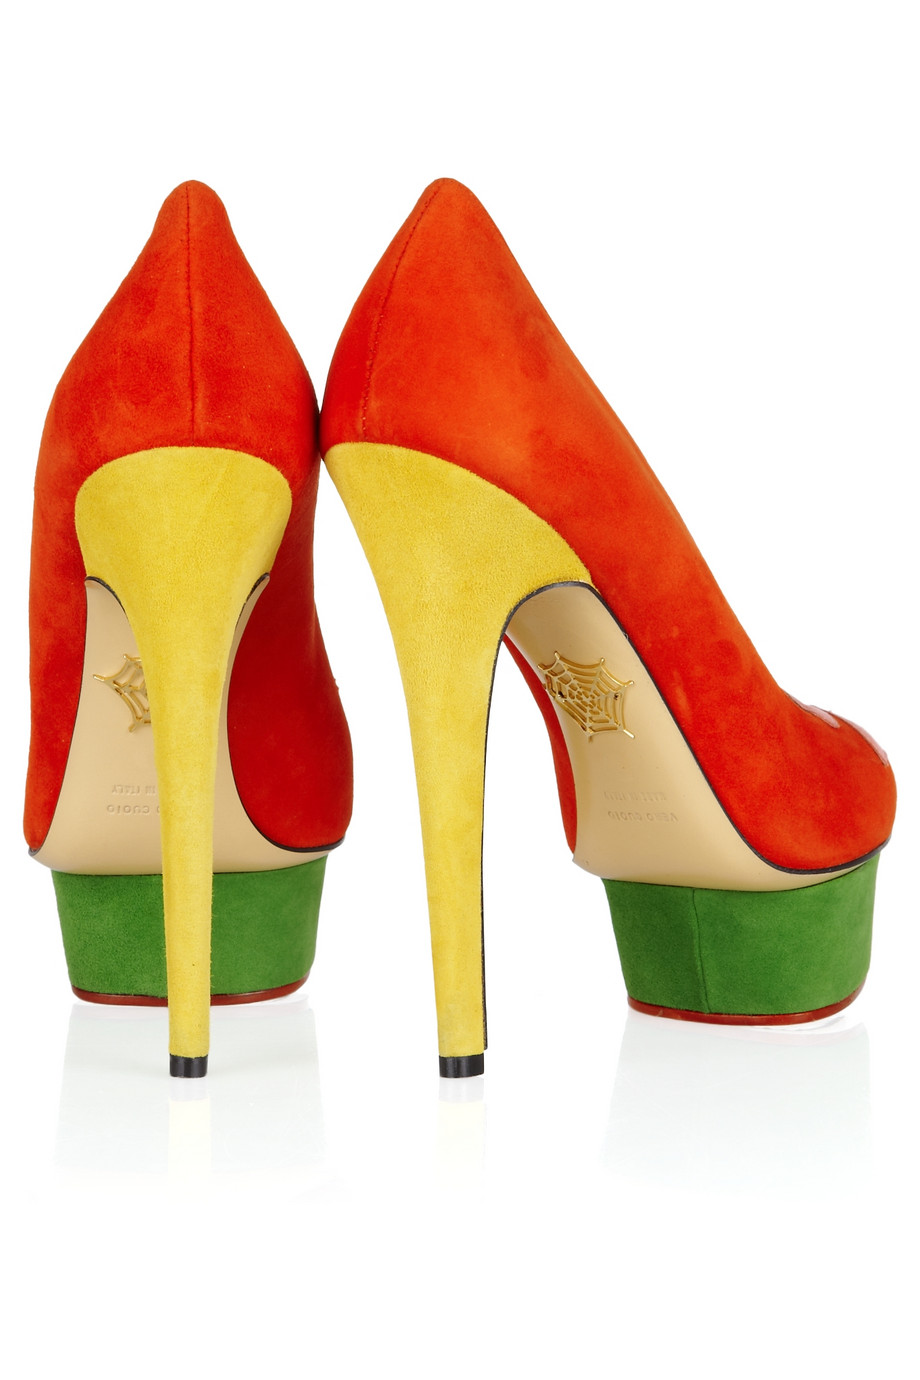 6792c596153b Green And Yellow Heels - Js Heel